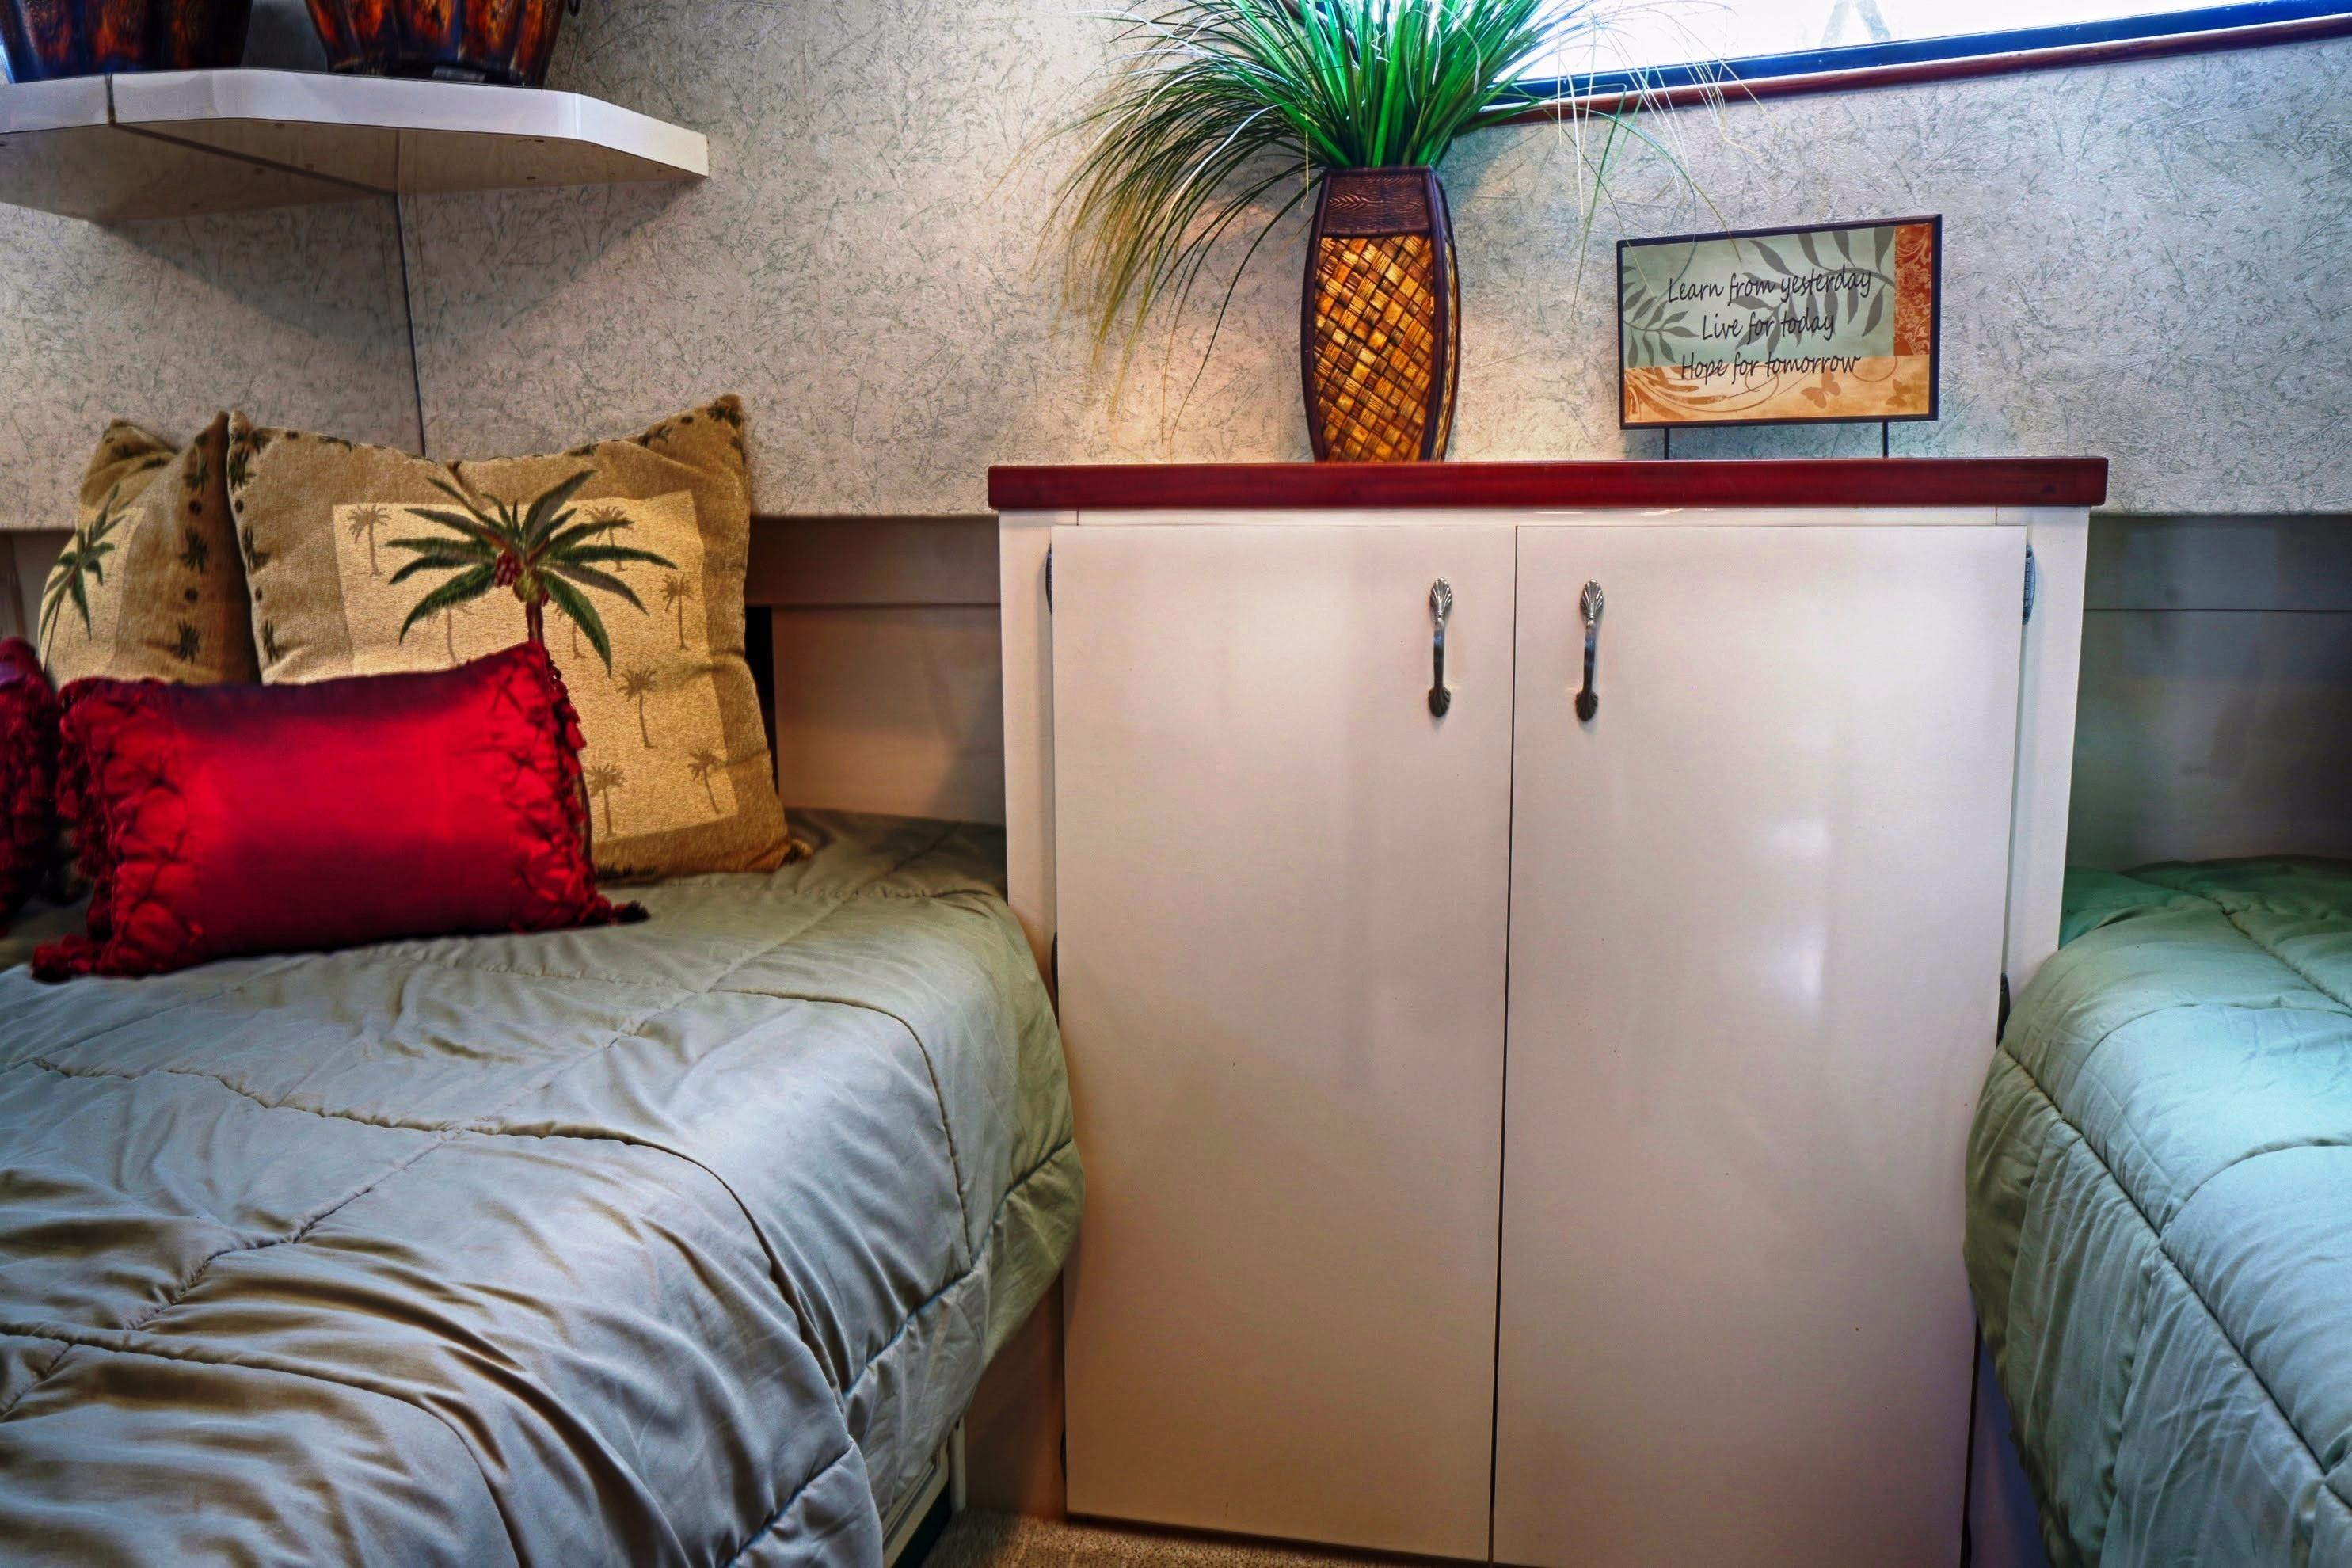 2nd guest's stateroom